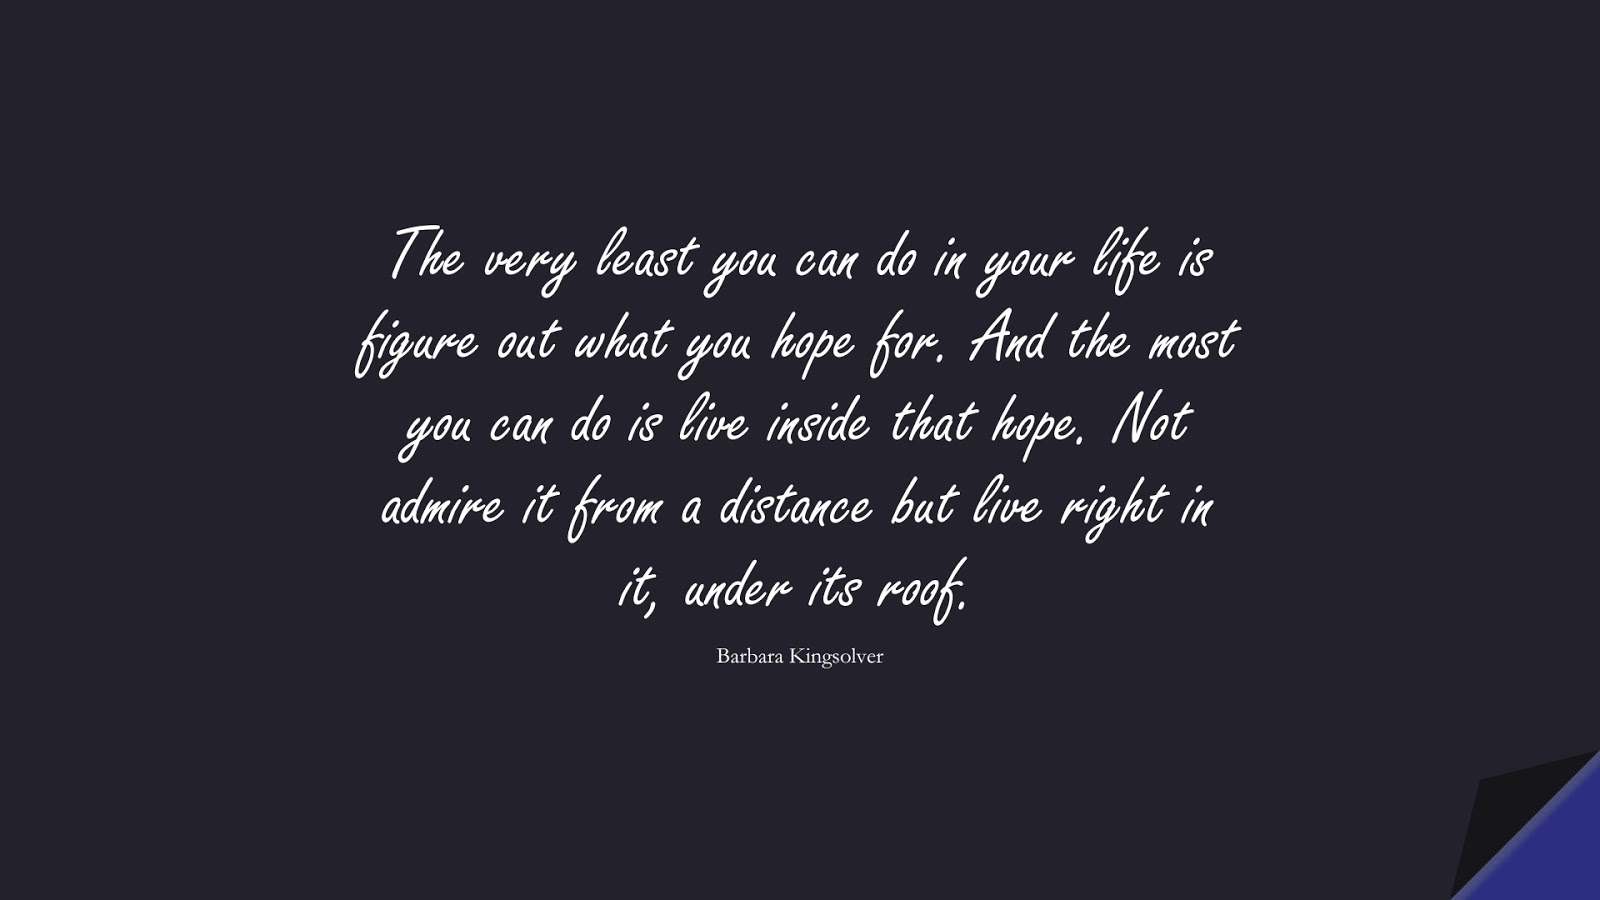 The very least you can do in your life is figure out what you hope for. And the most you can do is live inside that hope. Not admire it from a distance but live right in it, under its roof. (Barbara Kingsolver);  #HopeQuotes